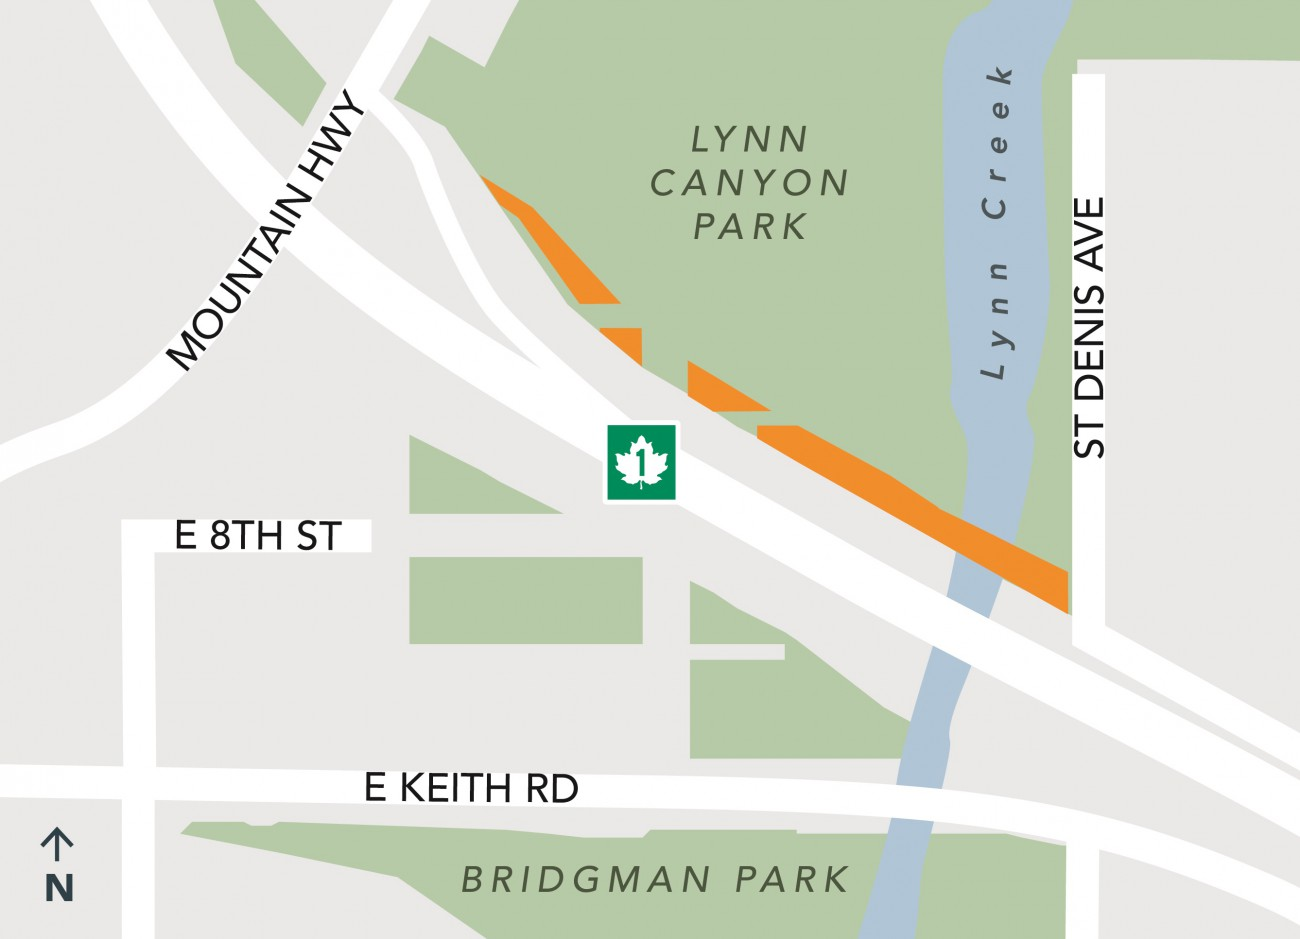 Map showing location of Lynn Park where land is being removed for Hwy 1